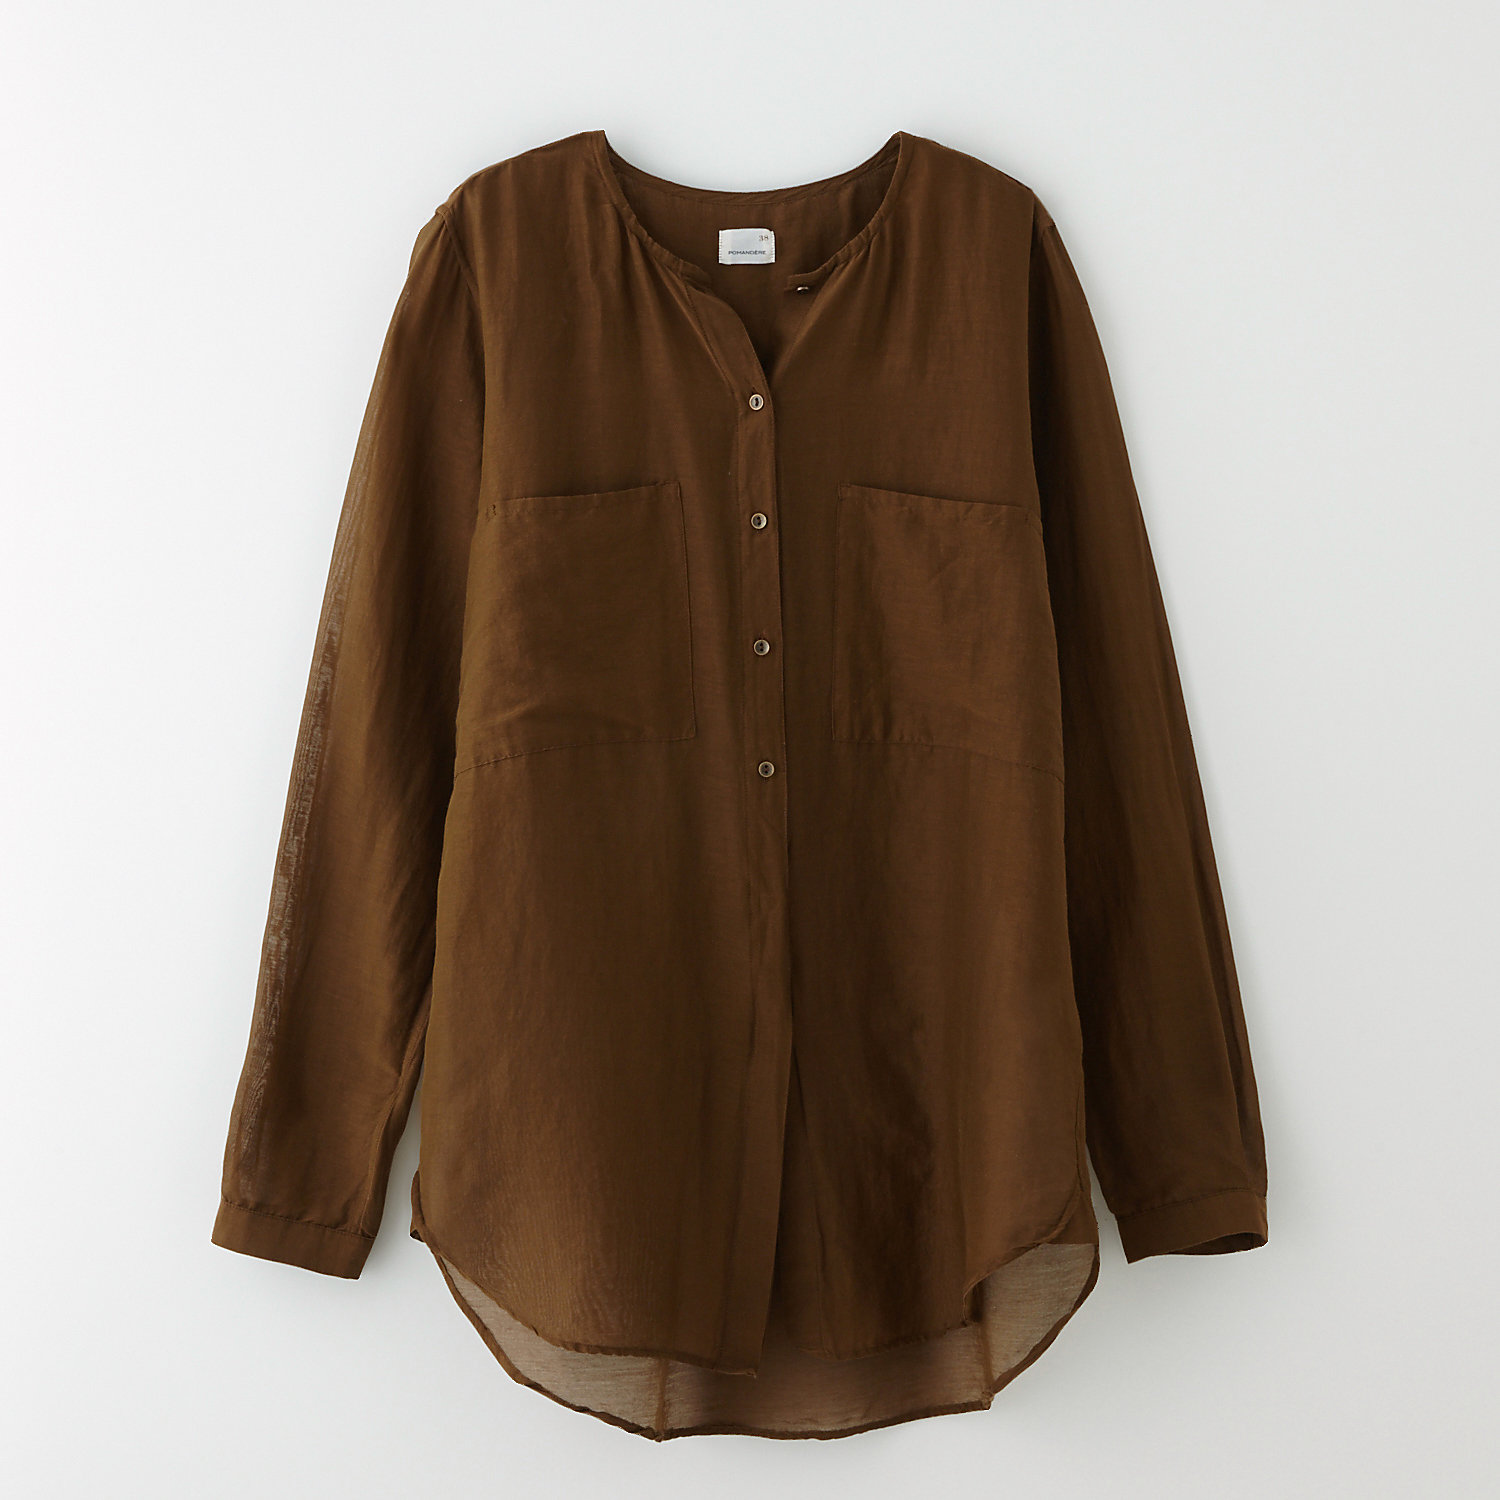 TWO POCKET BLOUSE